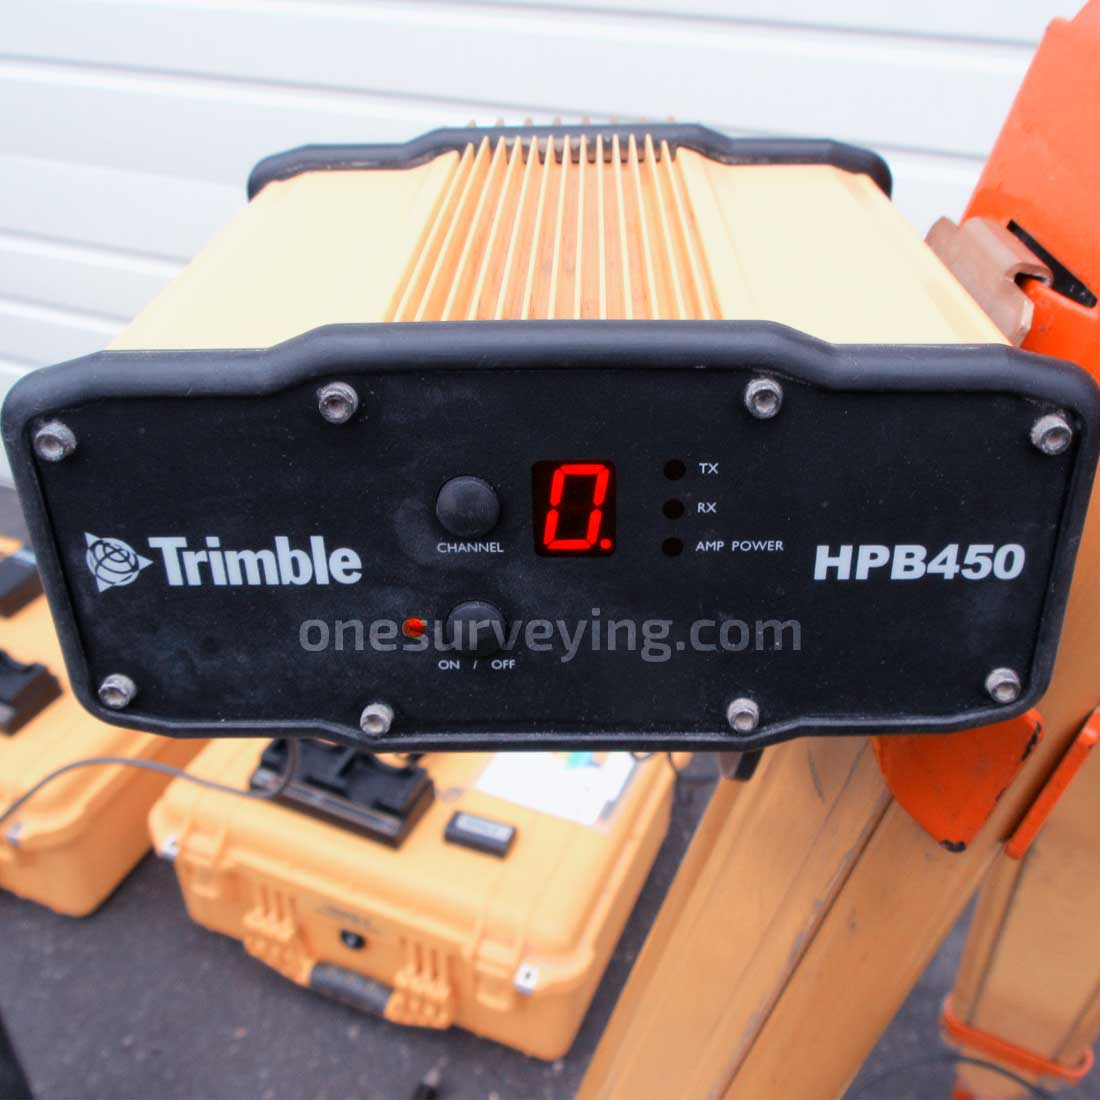 Trimble-R8-Model-3-Base-Rover-HPB450.jpg